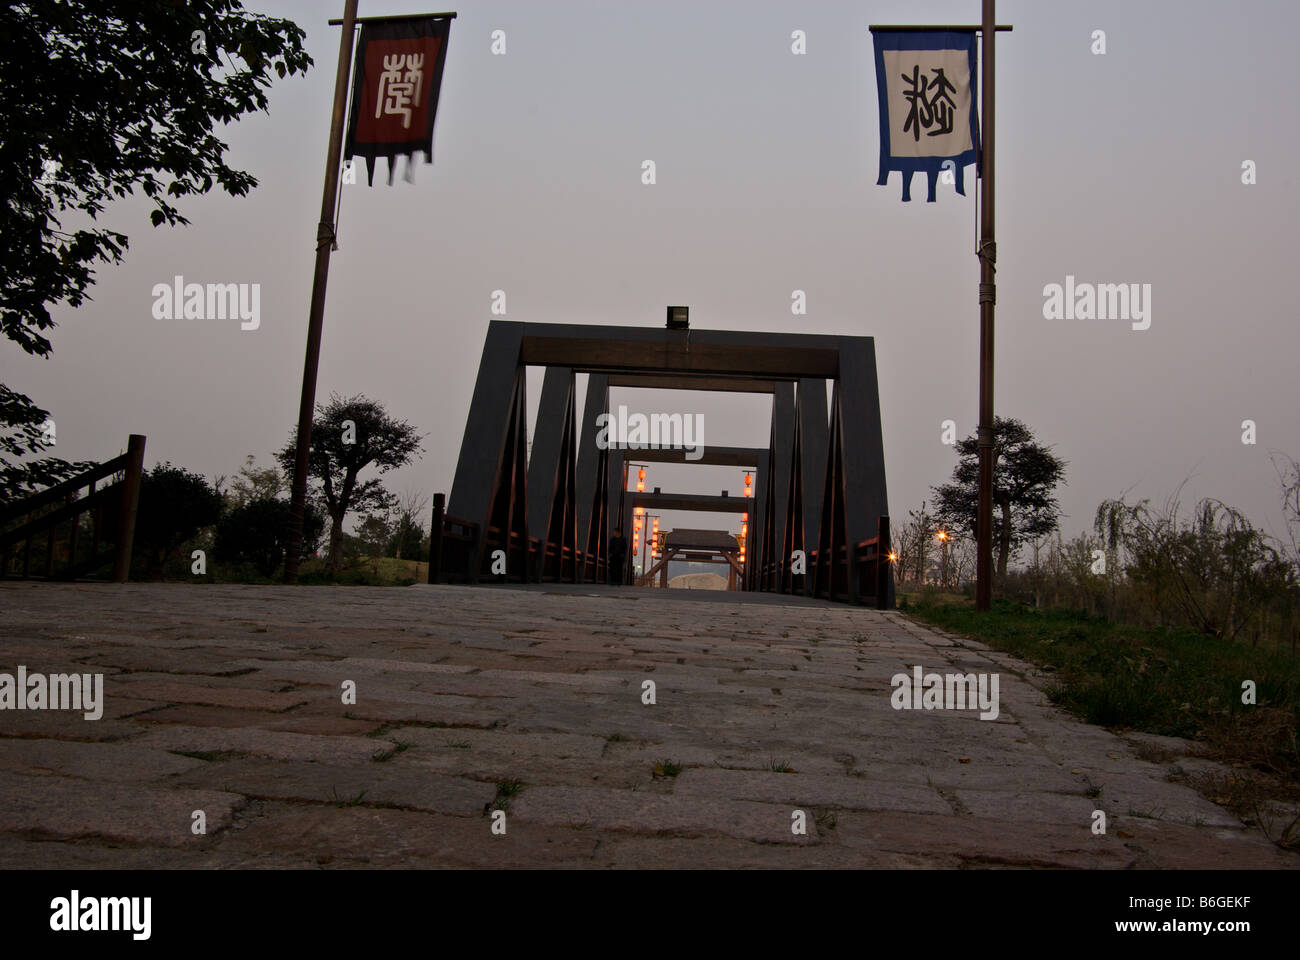 New bridge leading across one of three concentric protective moats that surrounded ancient city of Yancheng - Stock Image